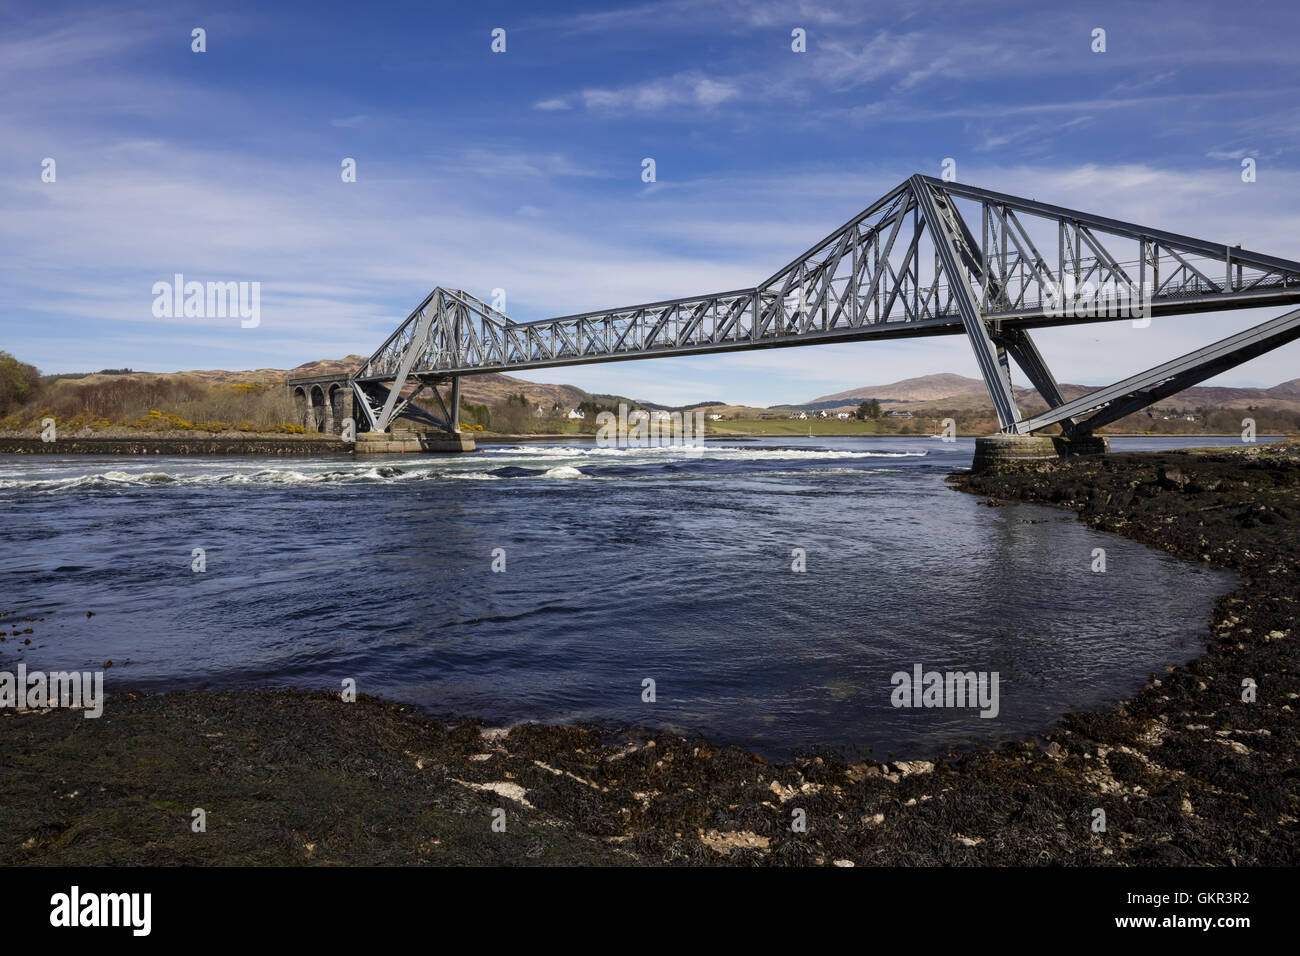 The Falls of Lora, a tidal race at the mouth of Glen Etive & Connel Bridge, a cantilever bridge in Scotland - Stock Image